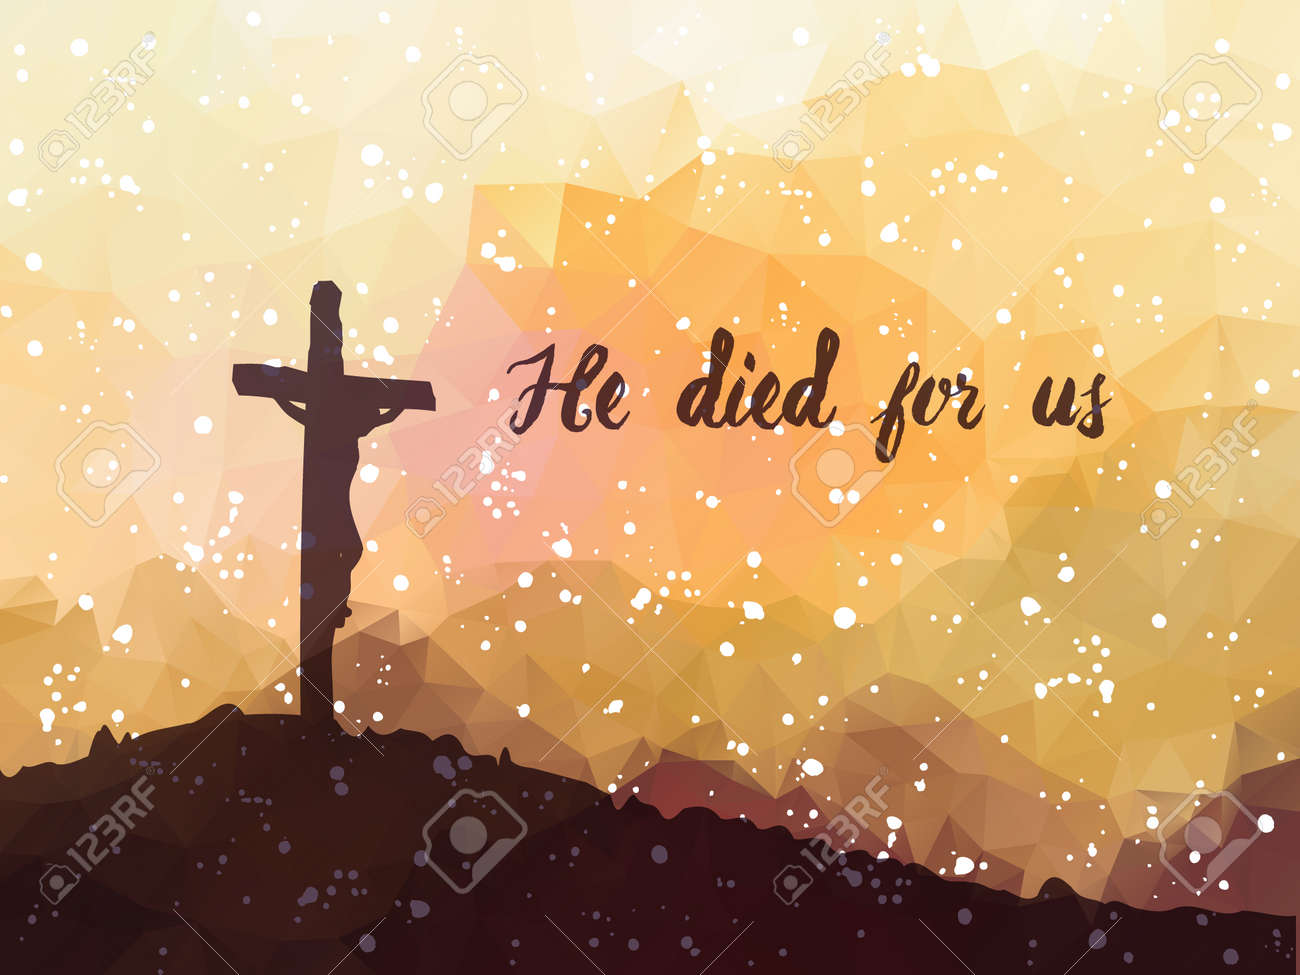 Watercolor vector illustration. Hand drawn Easter scene with cross. Jesus Christ. Crucifixion. - 53143146